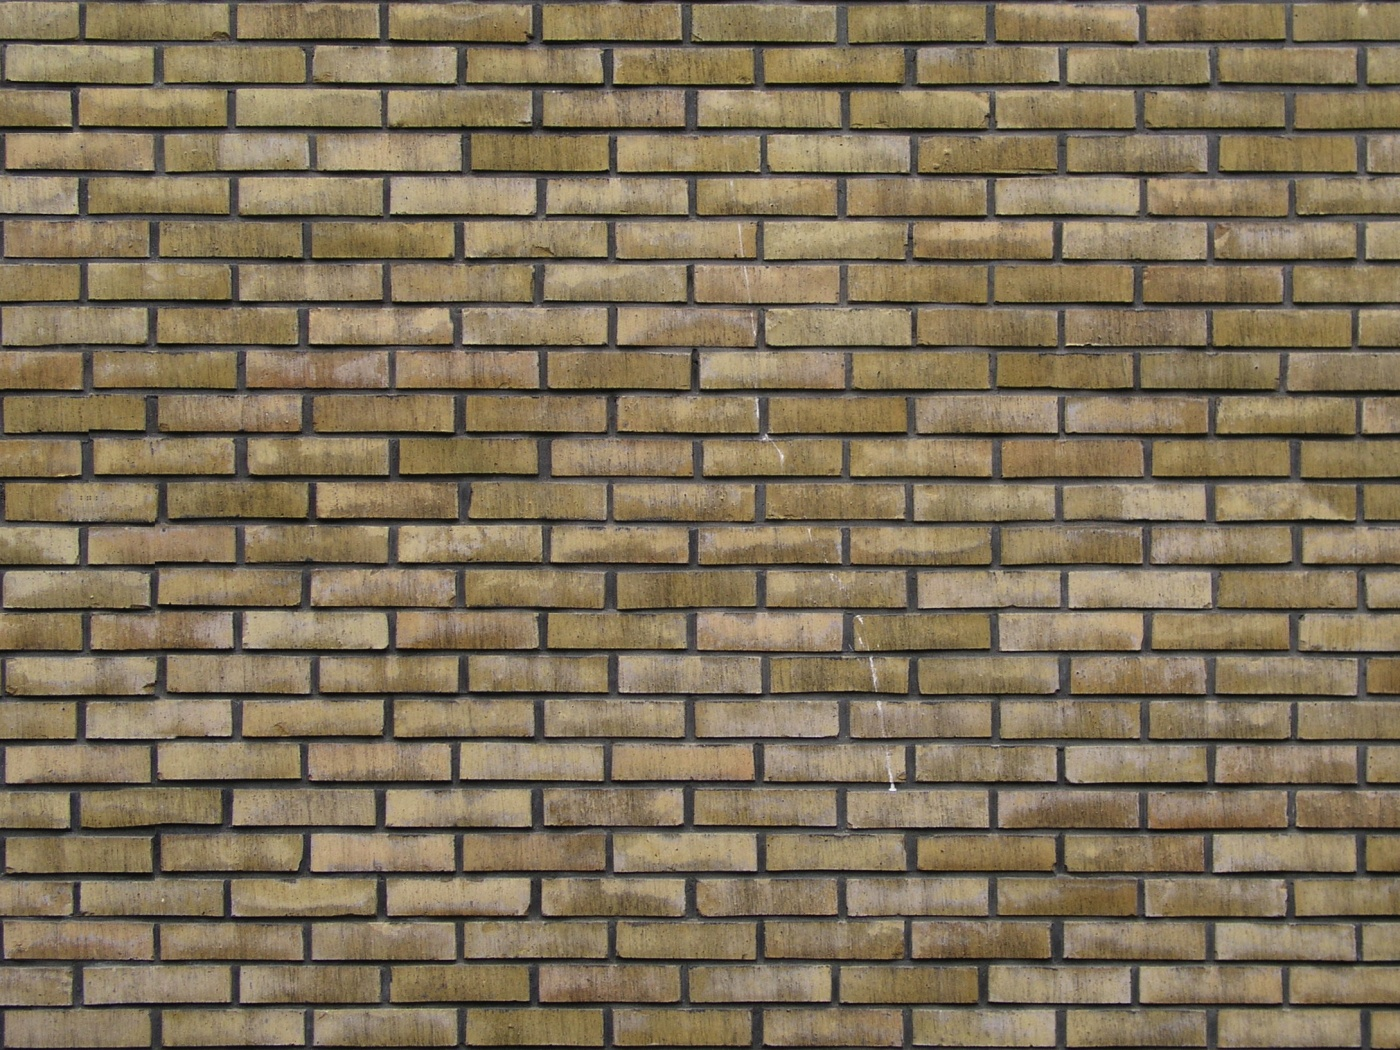 bricks, texture, wall decorative brick , download background, texture, brick texture